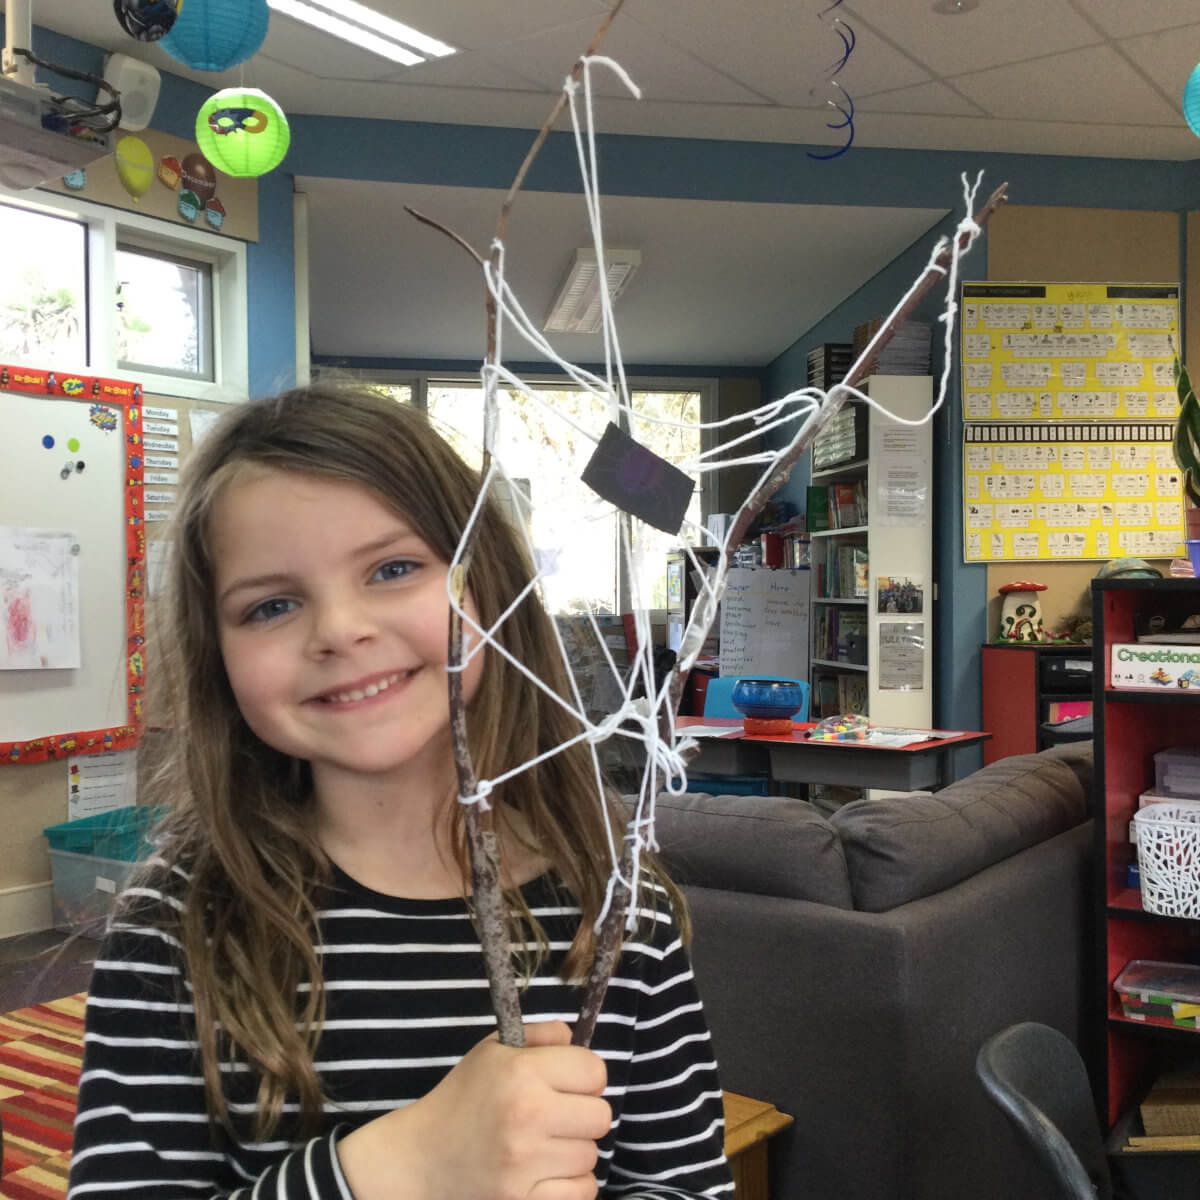 Building a spider web with sticks and string